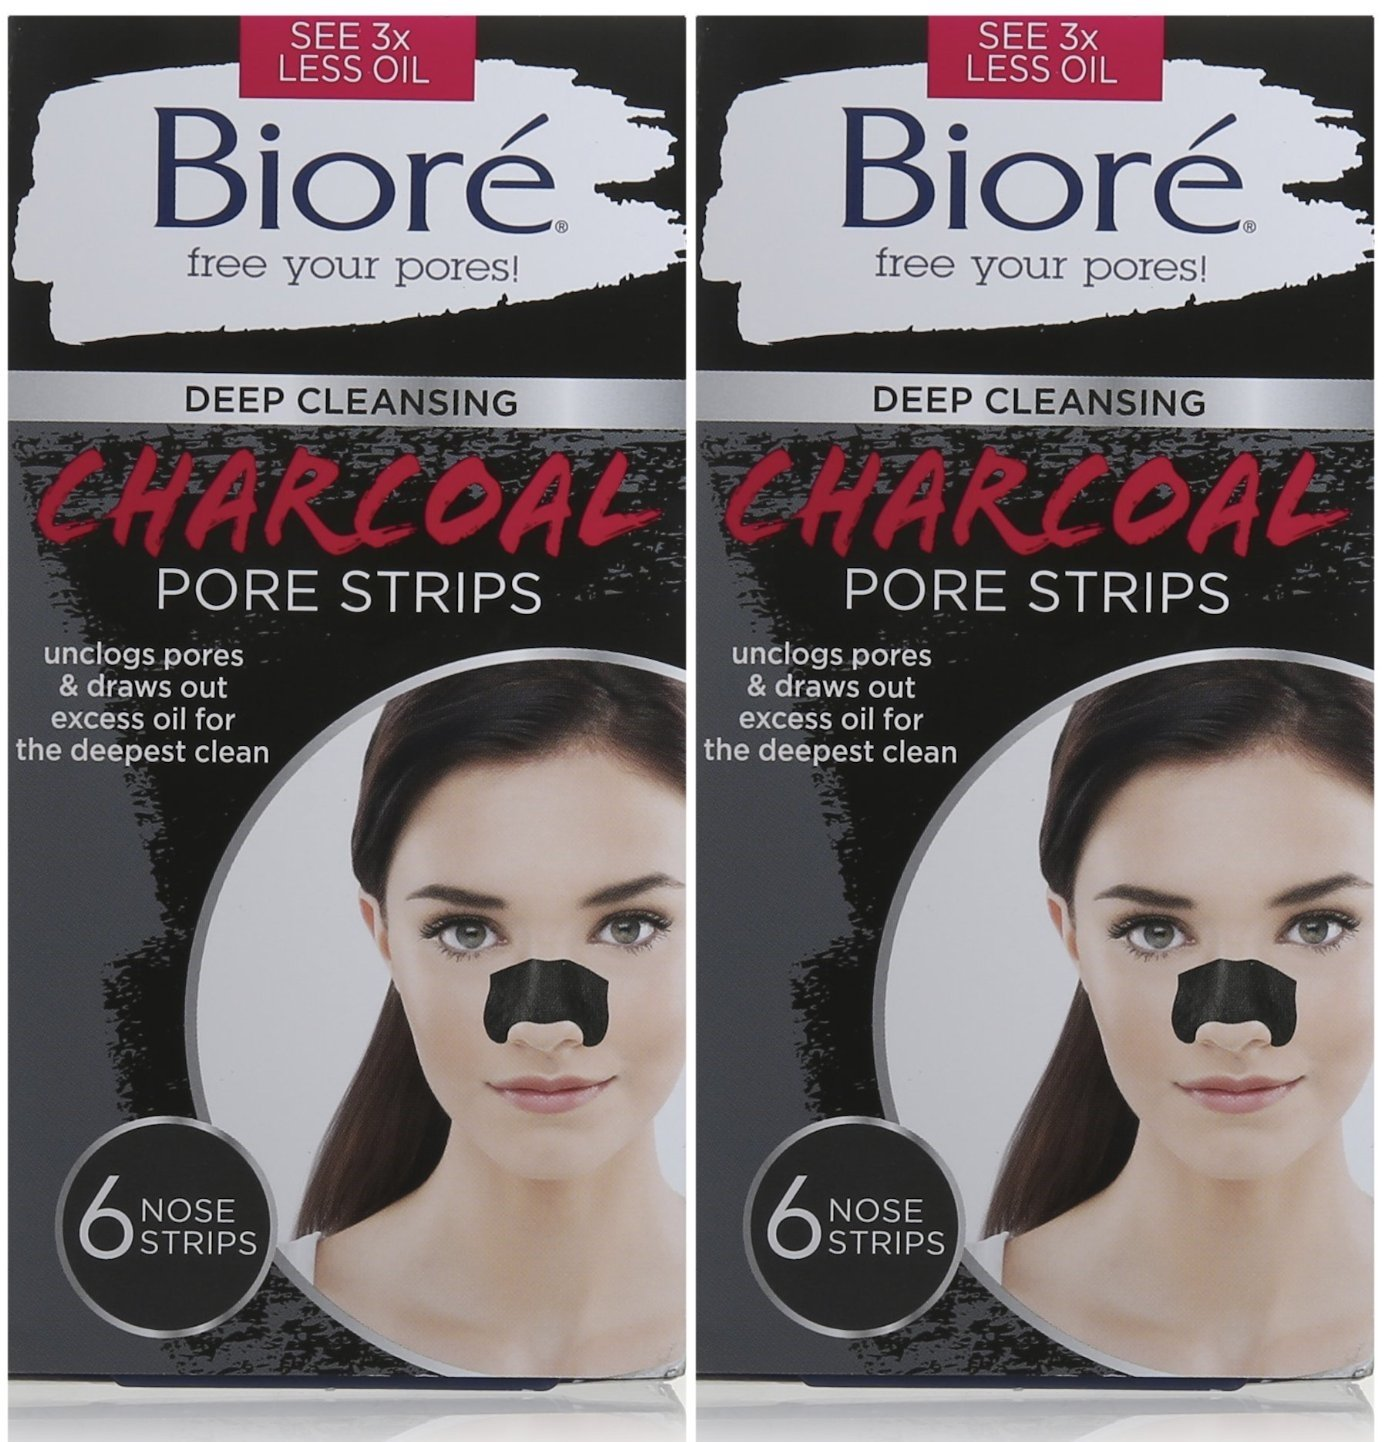 Biore Deep Cleansing Pore Strips, Charcoal, 6 Count (Pack of 2) 6 Count (Pack of 2) Bioré